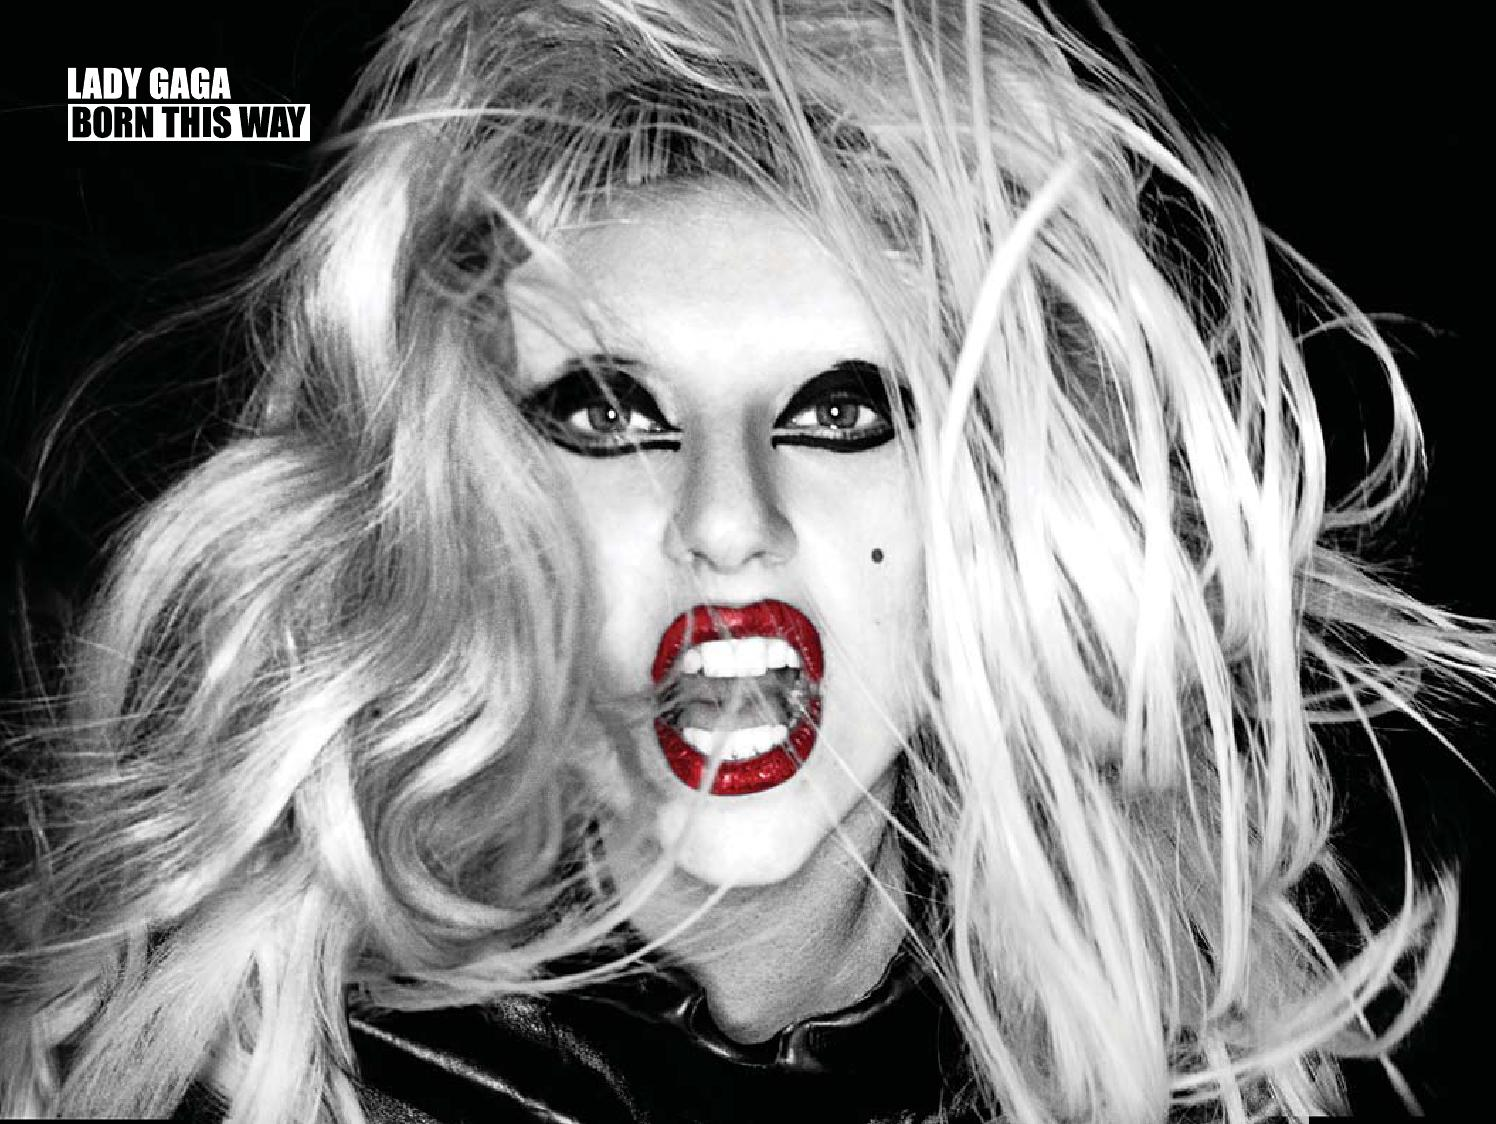 Lady gaga born this way.